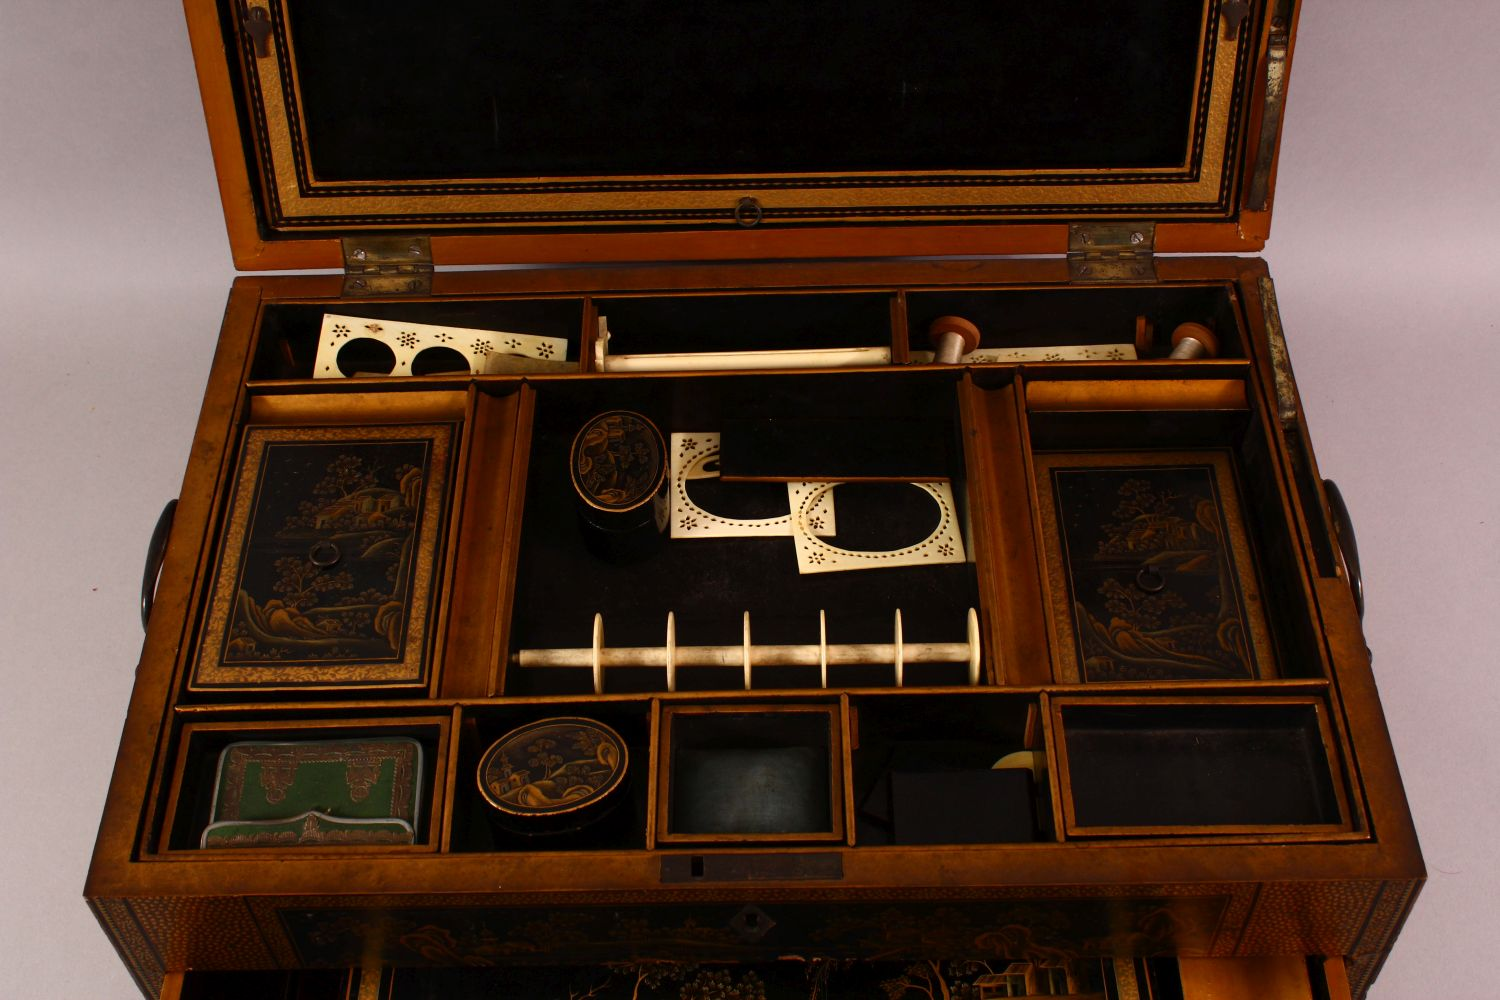 A CHINESE EXPORT LACQUER AND GILT SEWING BOX, the box containing lift out tray with nine - Image 4 of 7